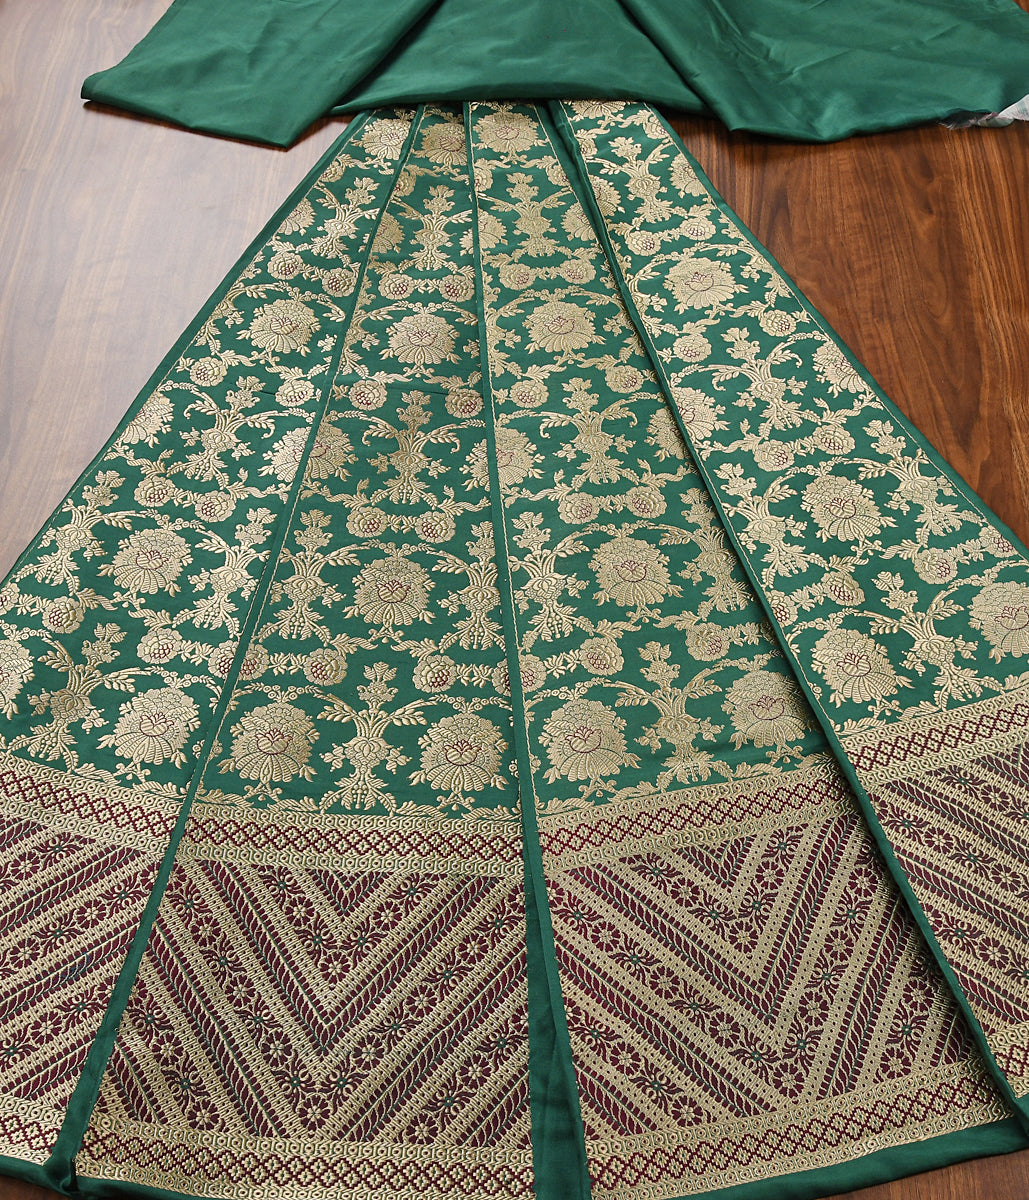 Handwoven Green Meenakari lehenga with red border